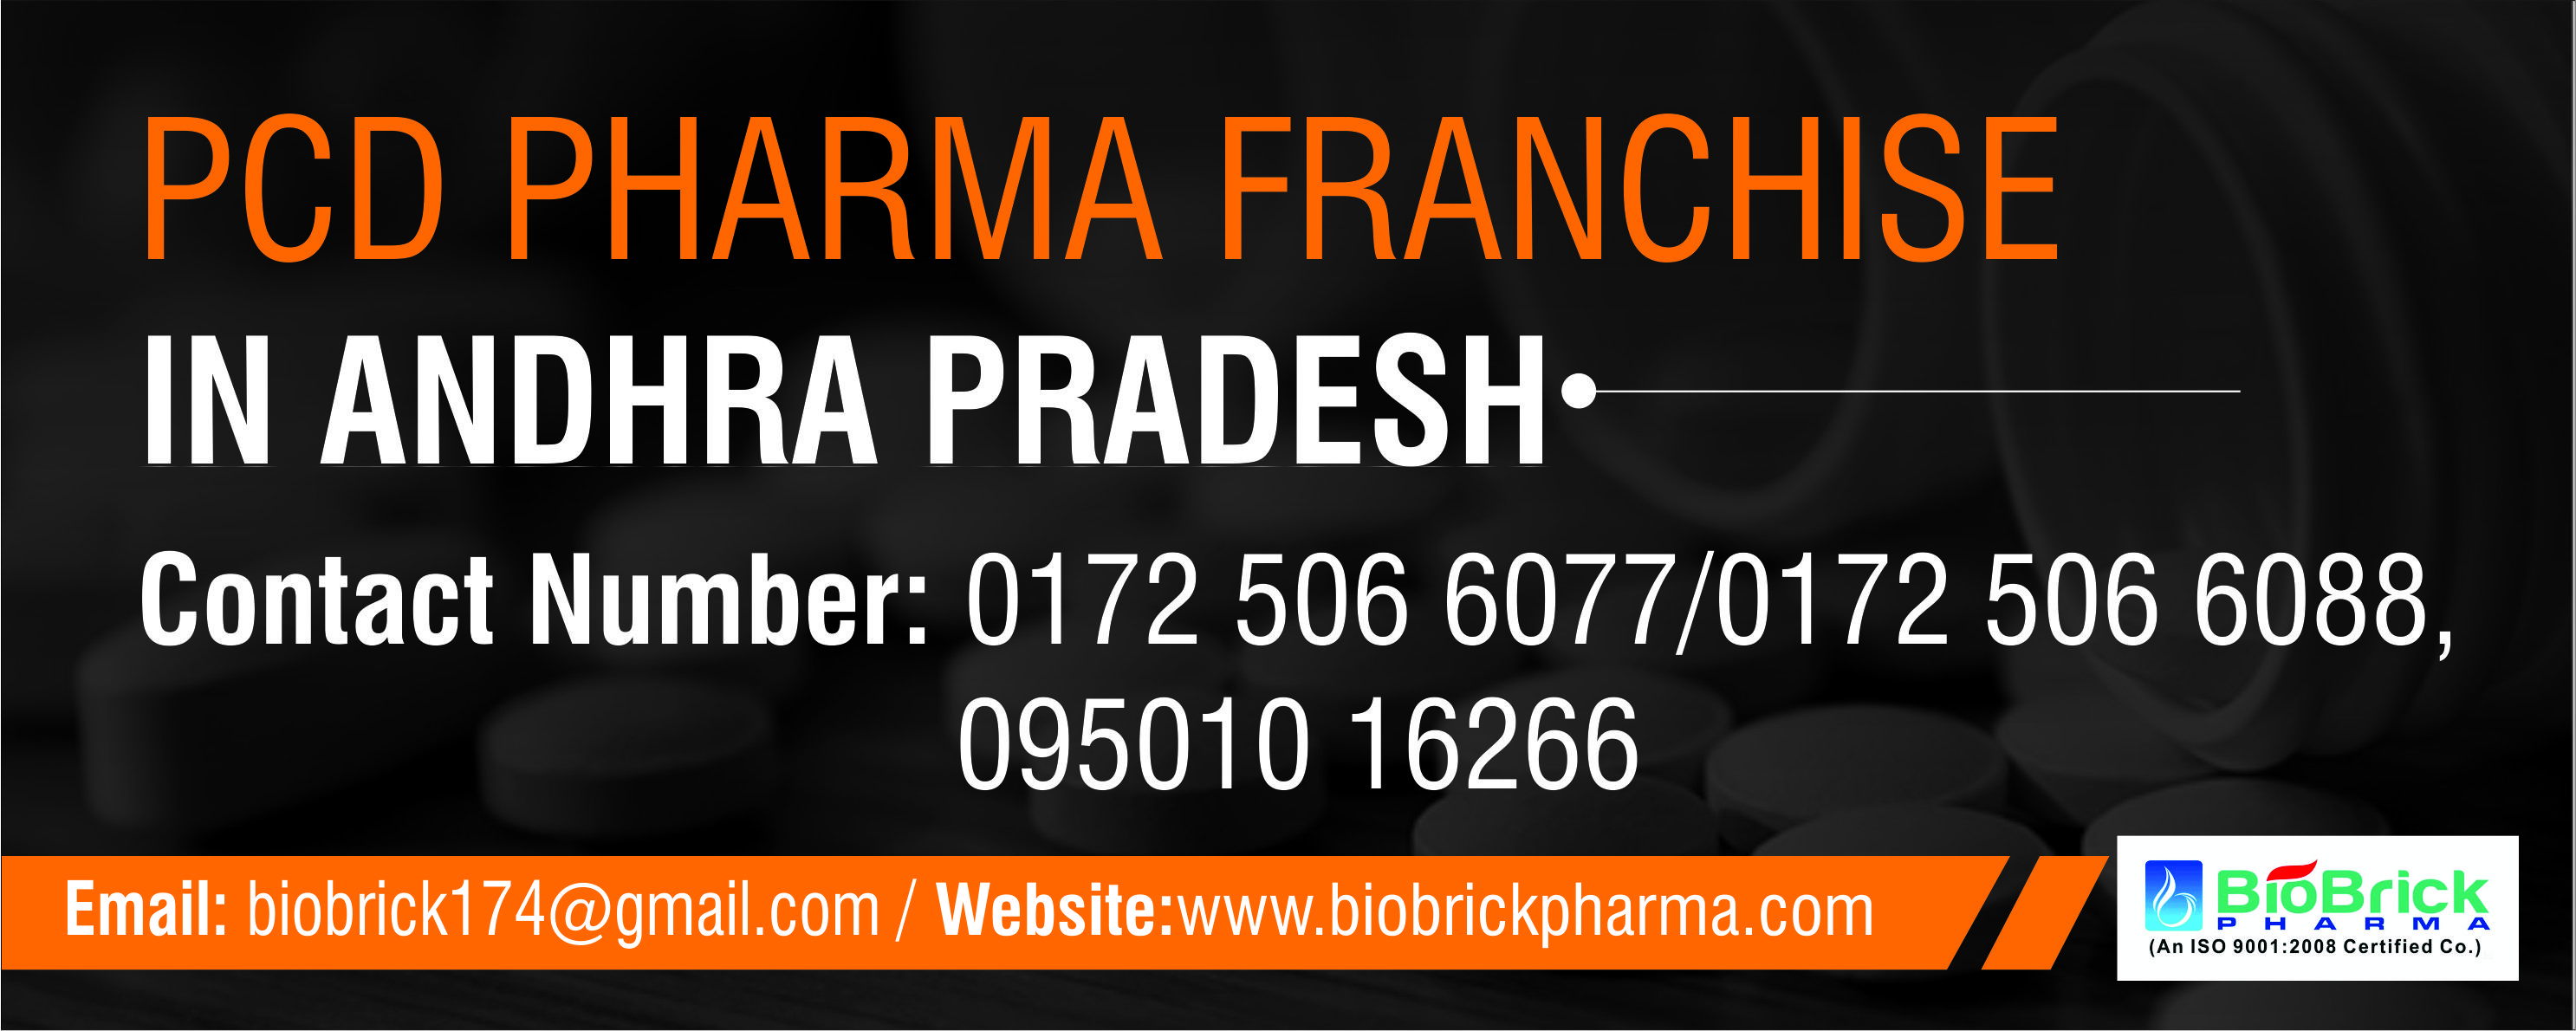 PCD Pharma Franchise Company in Hyderabad, Andhra Pradesh